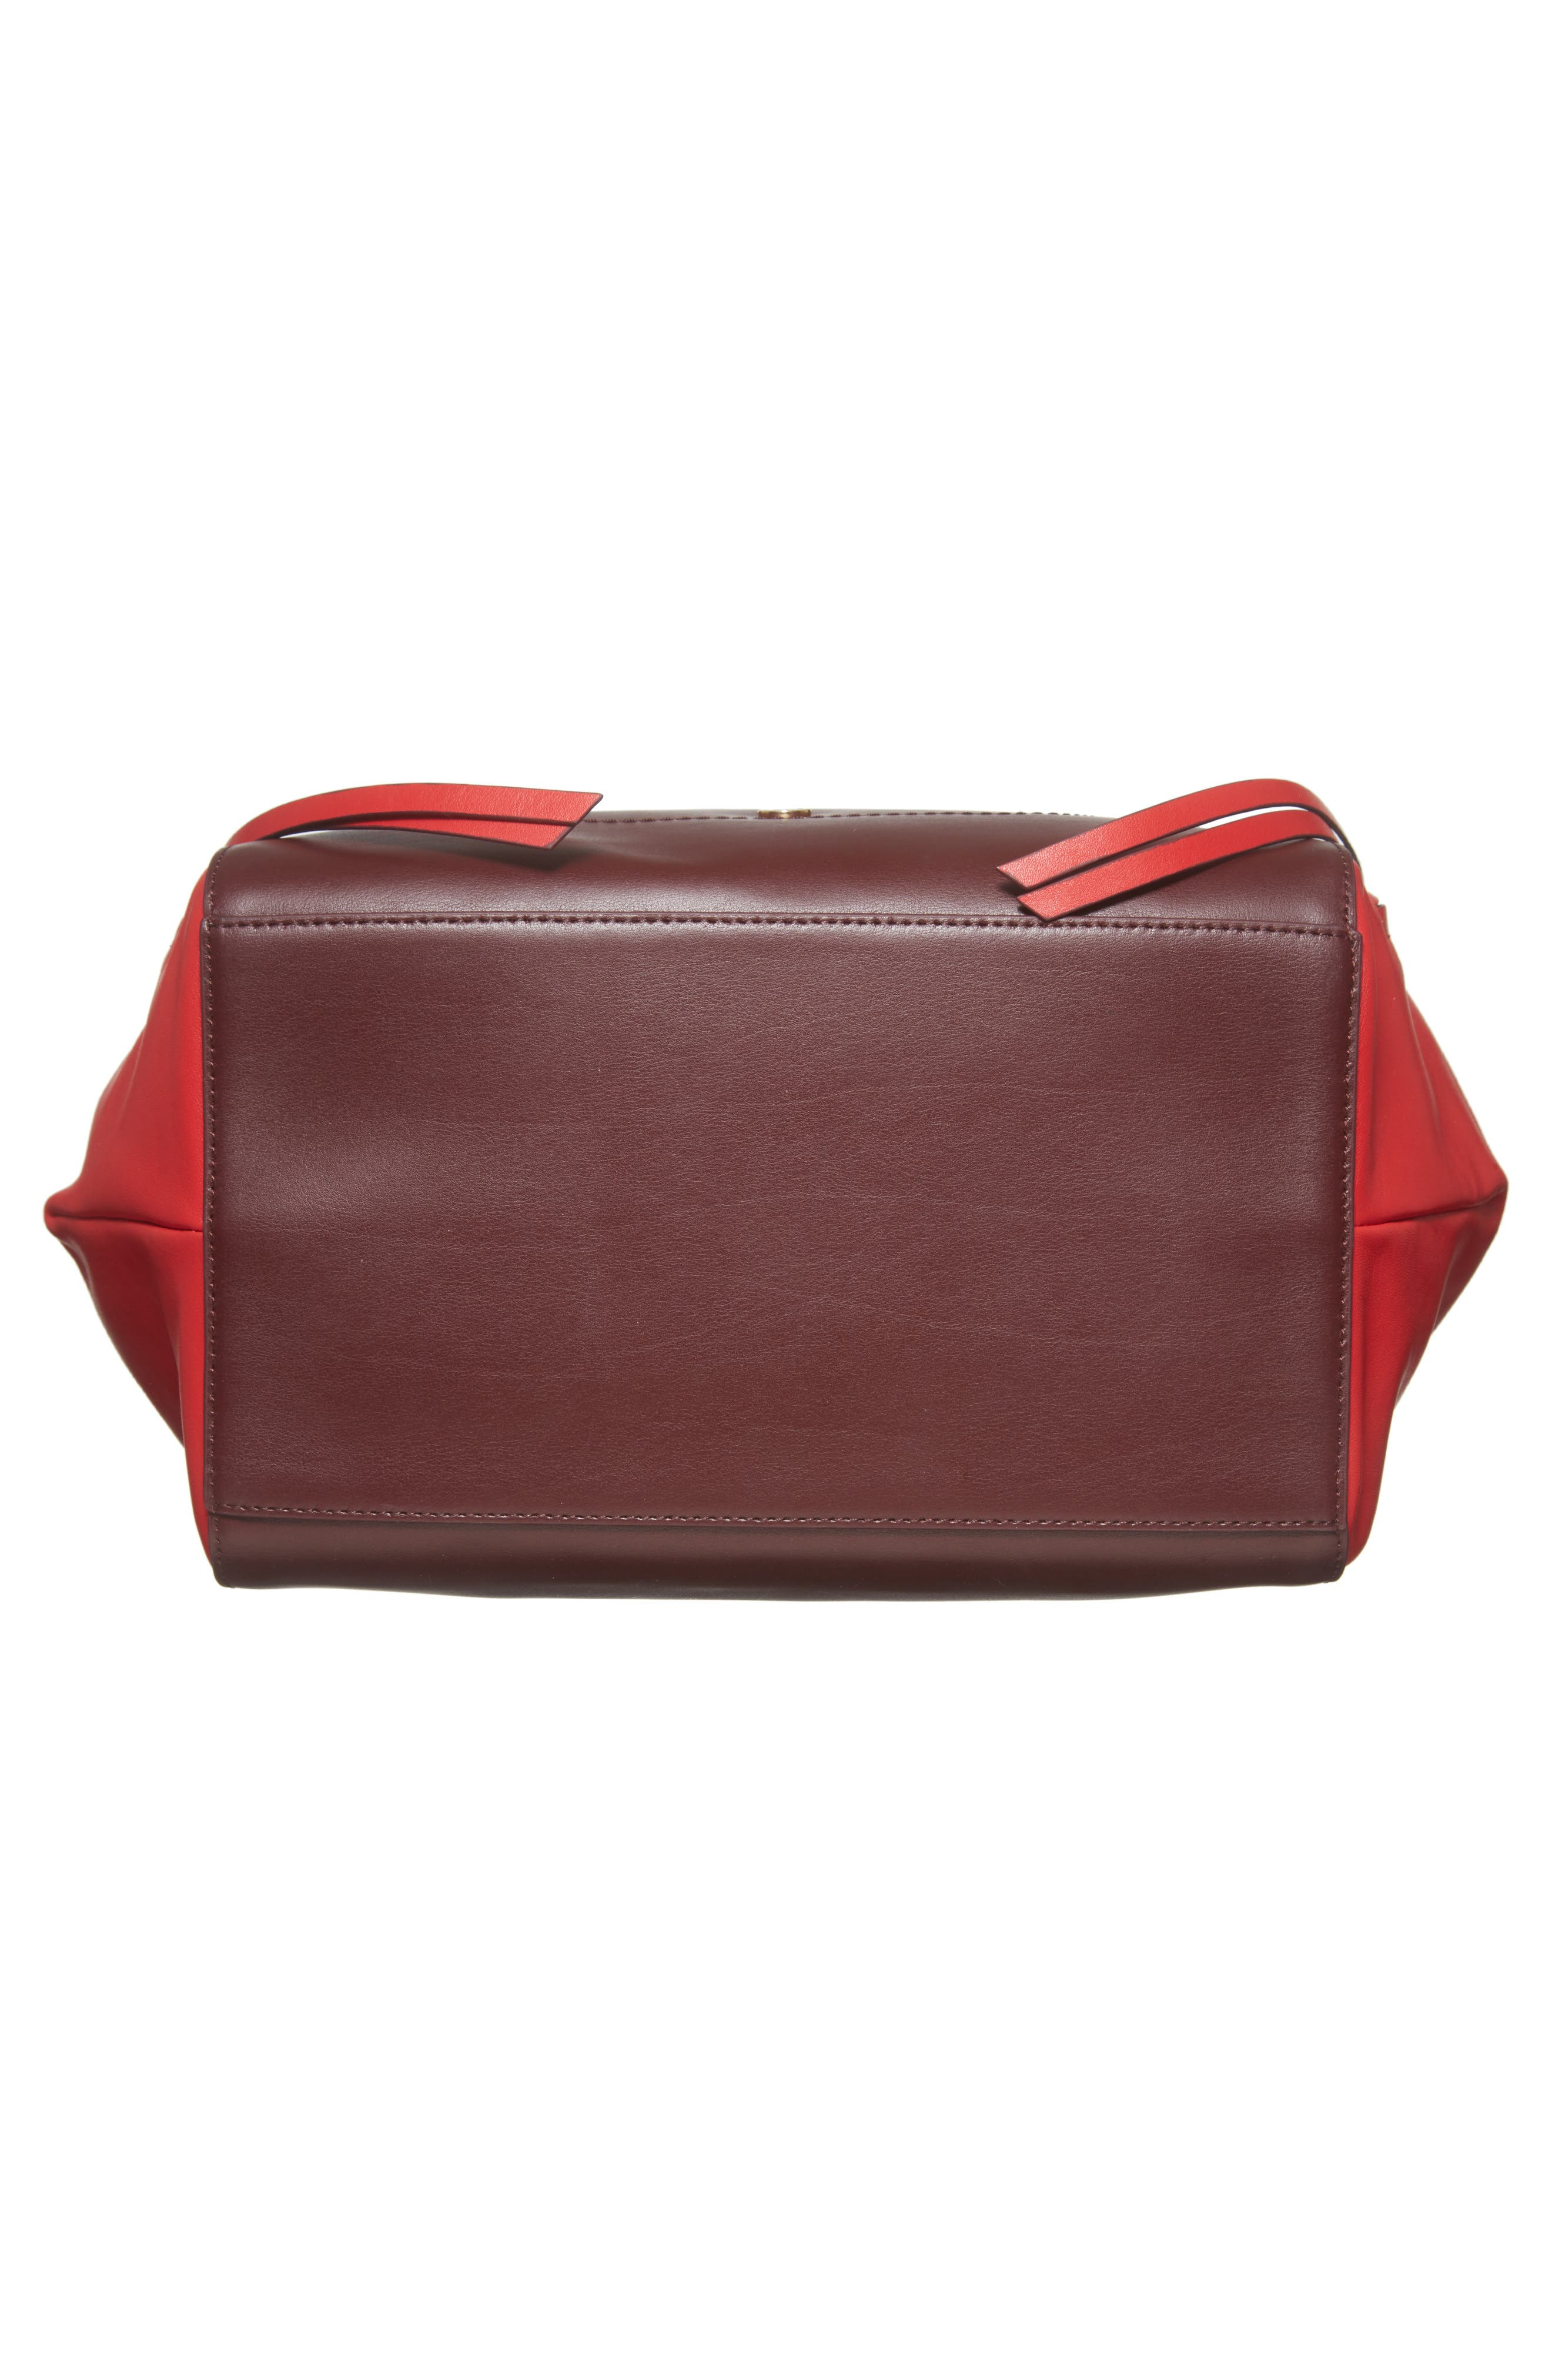 Downtown Charlize RFID Leather Tote,                             Alternate thumbnail 18, color,